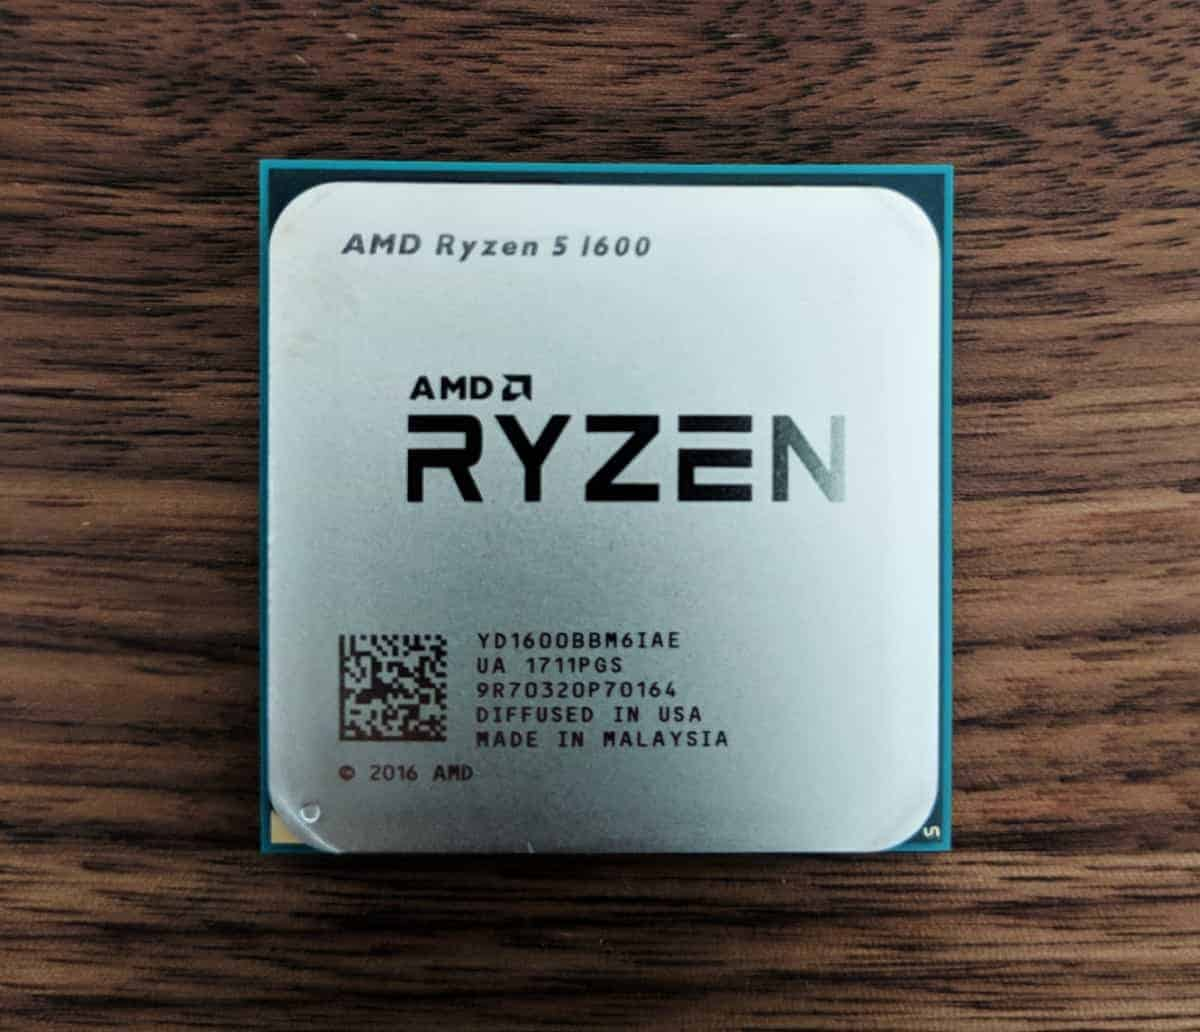 AMD Ryzen 5 1600 CPU Review - The Streaming Blog